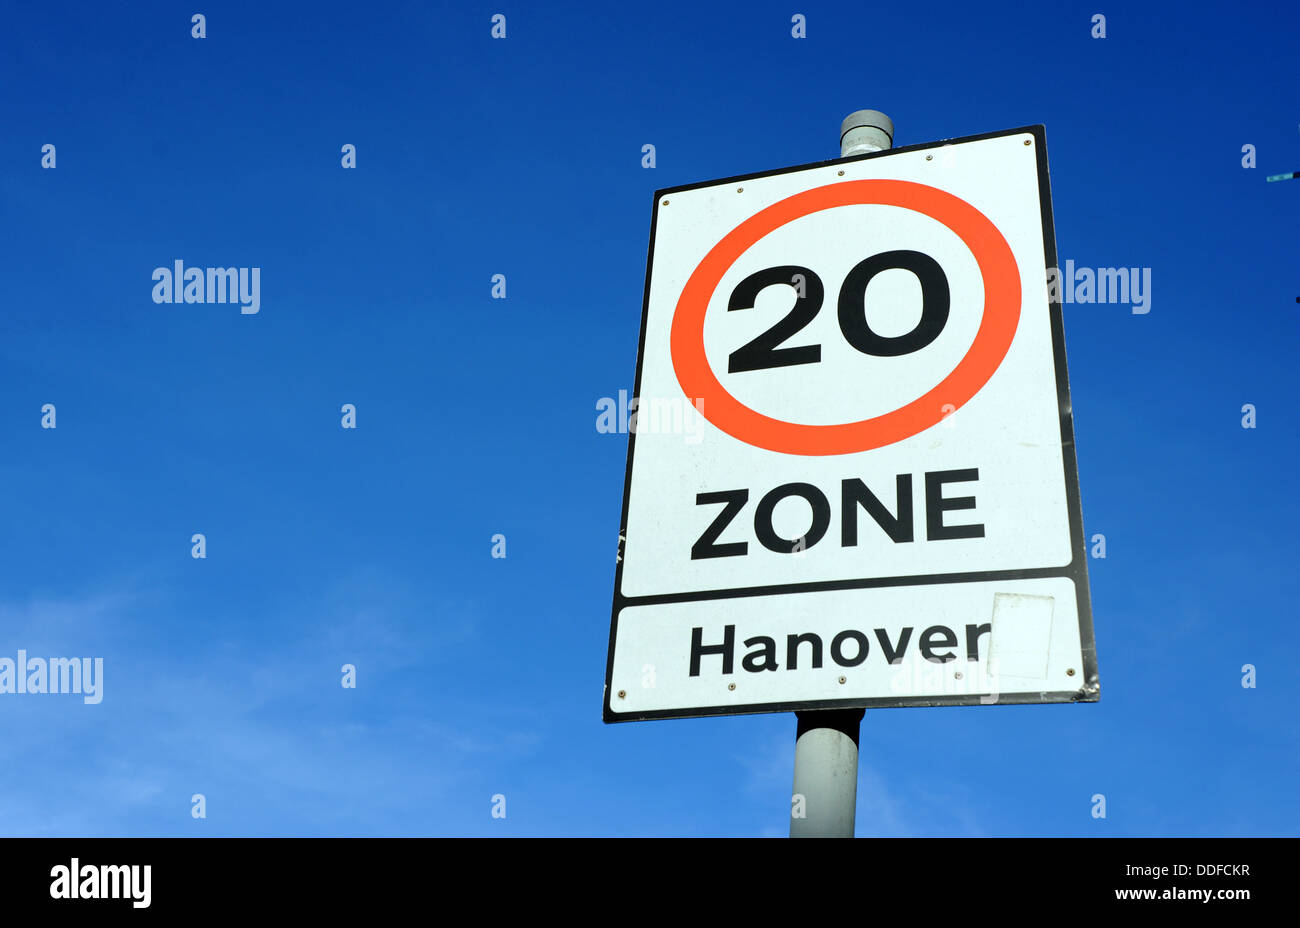 20 MPH speed limit area in Hanover district of Brighton UK - Stock Image